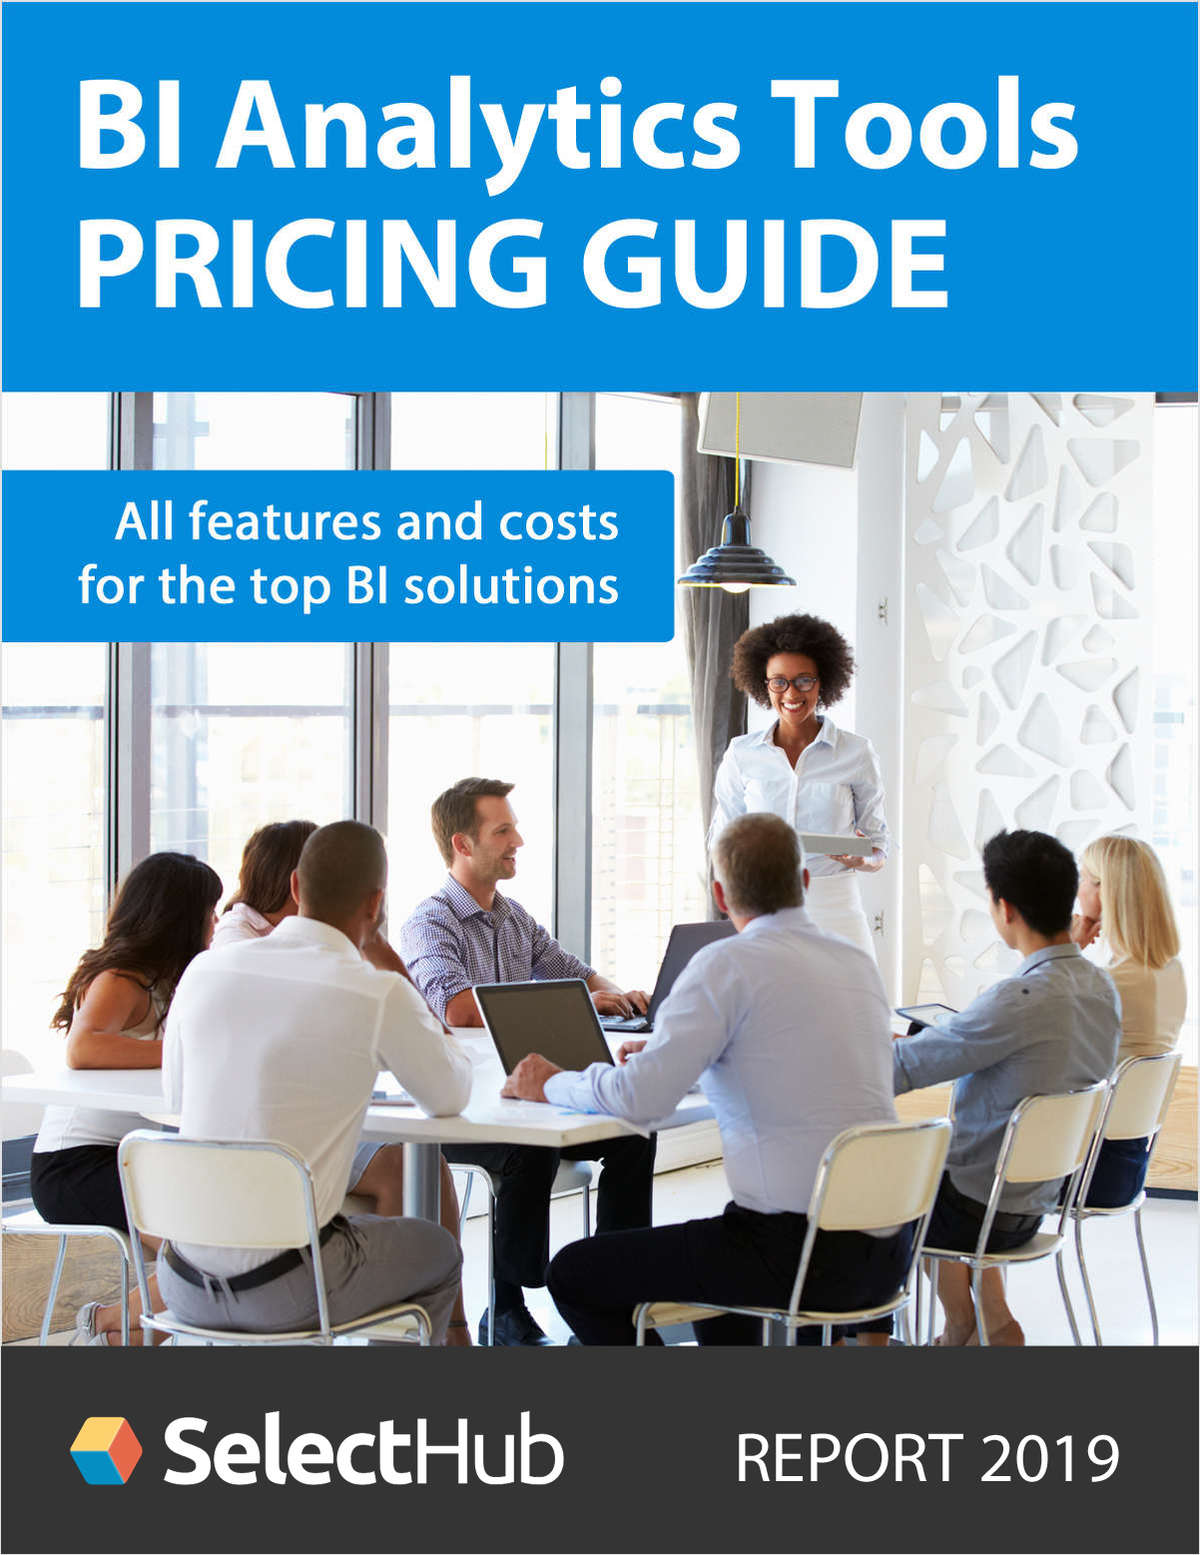 Top BI Analytics Tools--Definitive Pricing Guide 2018